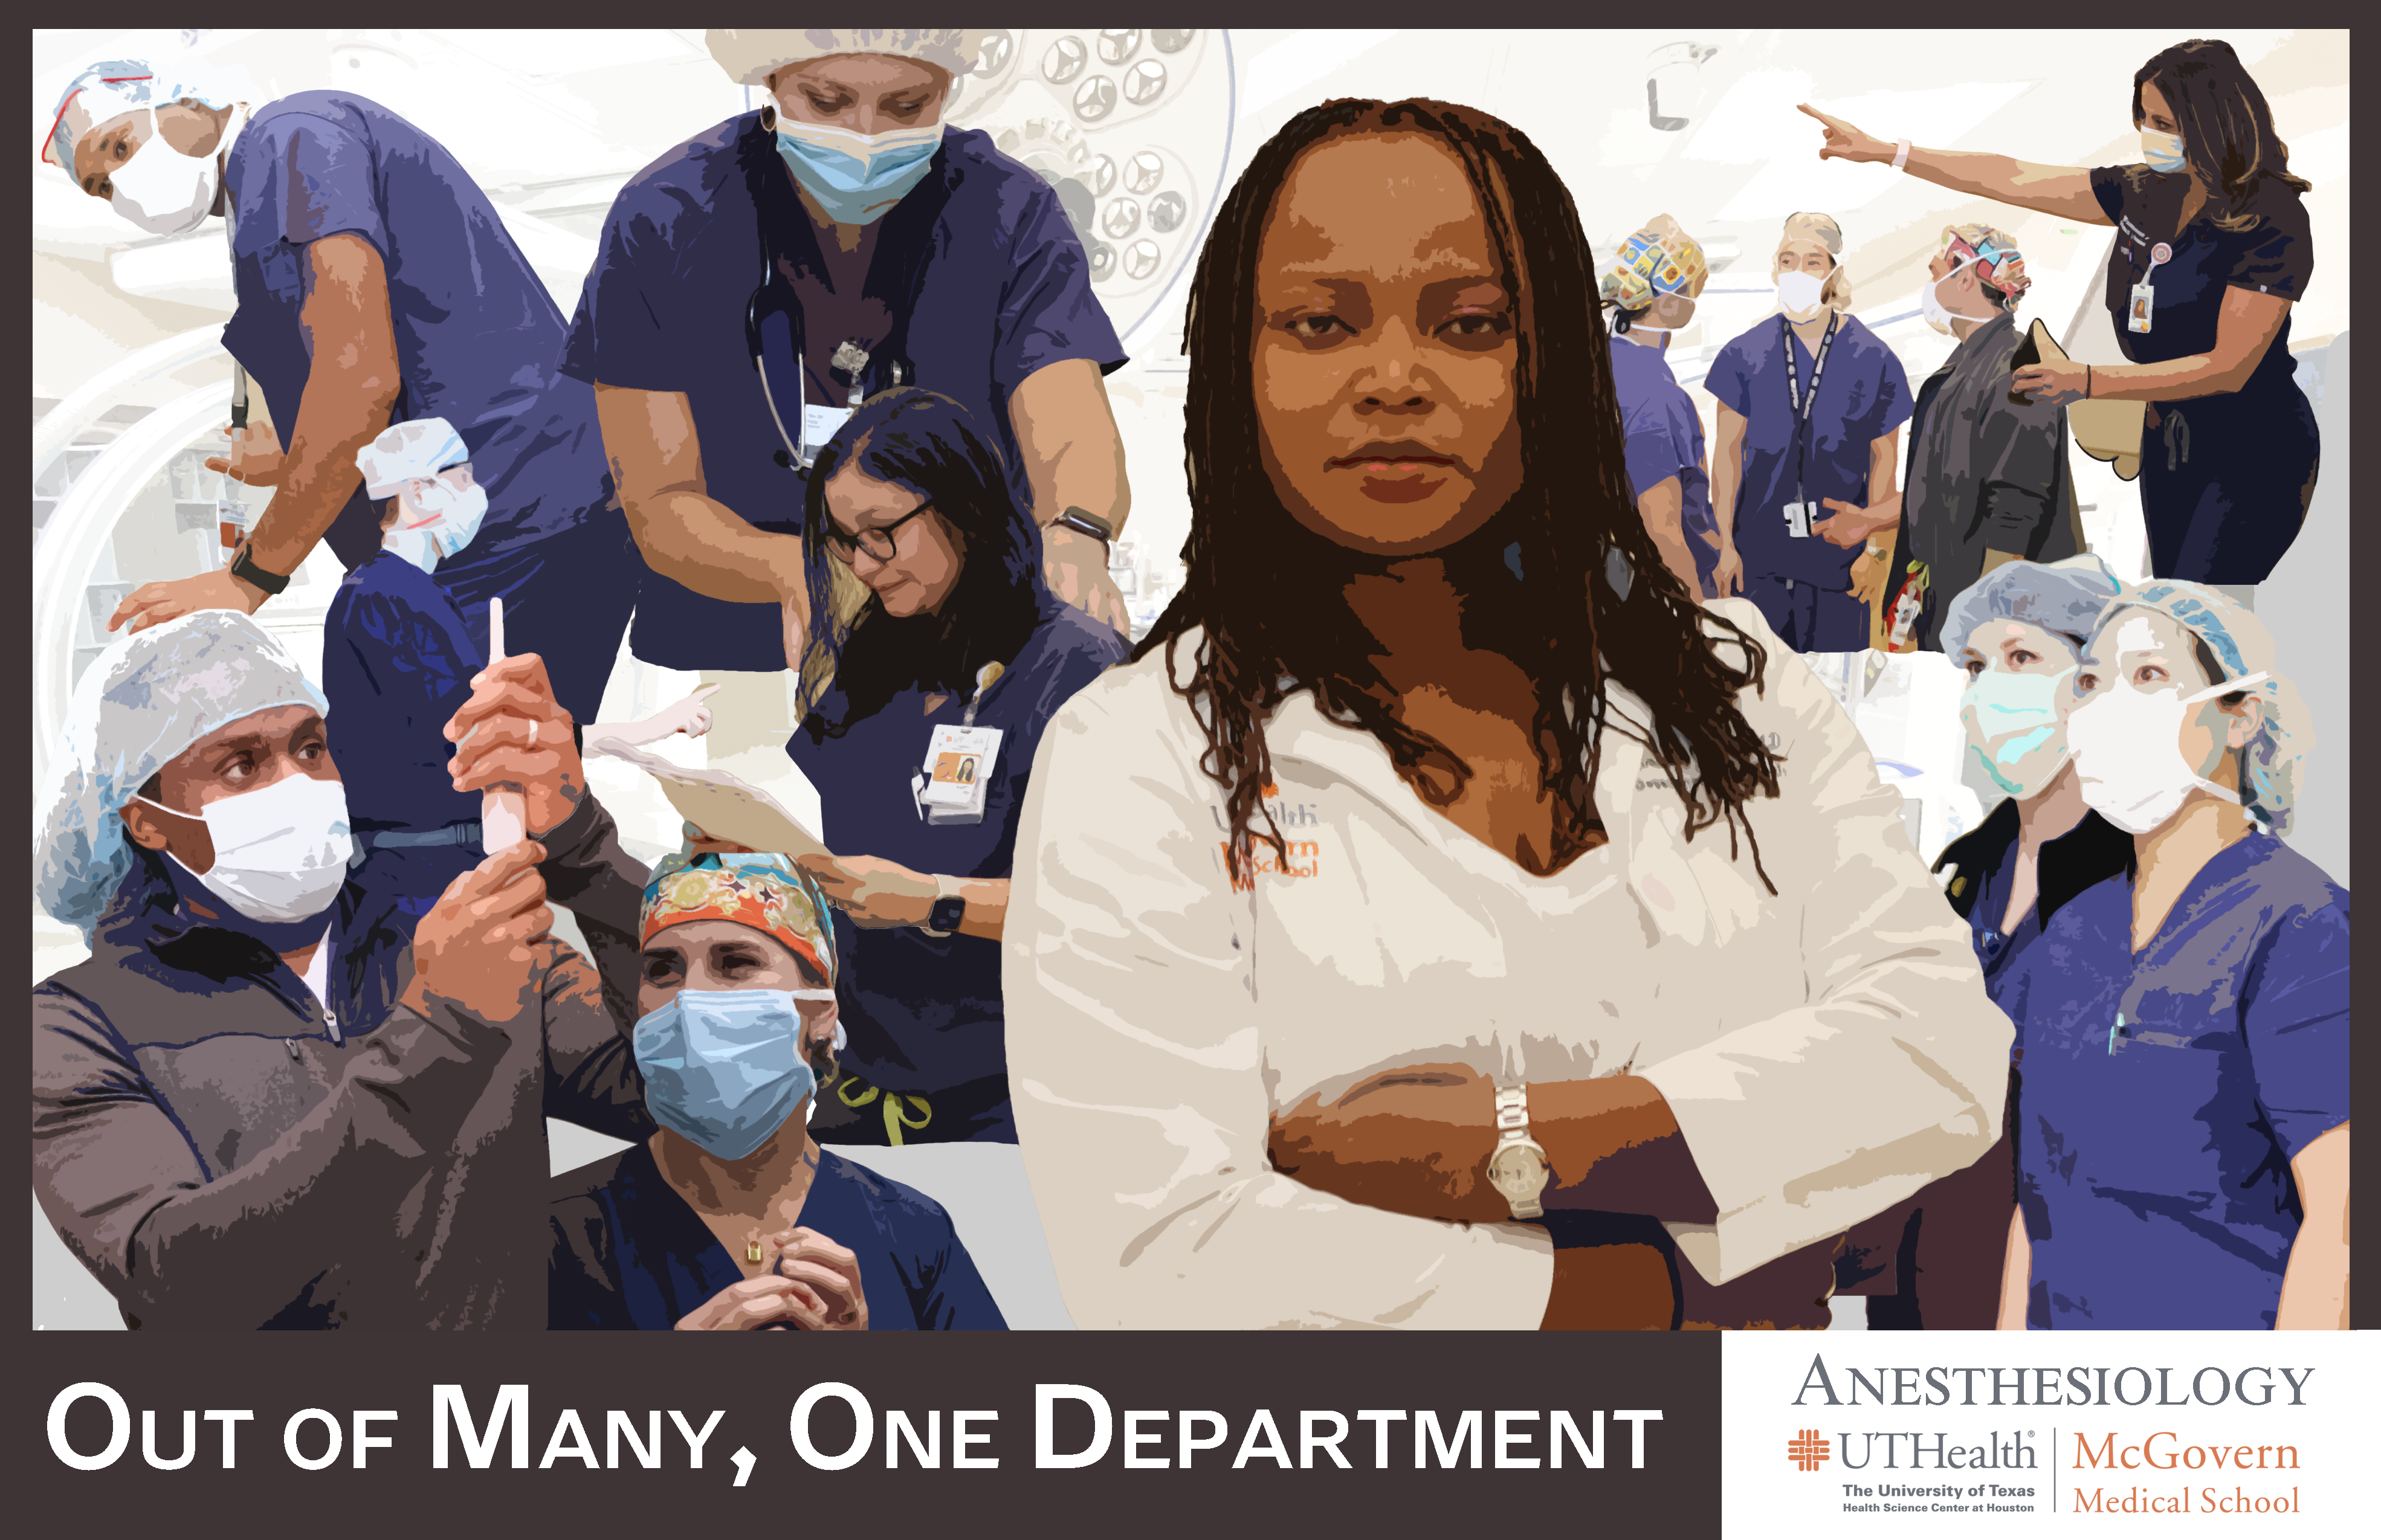 Faces of Anesthesiology